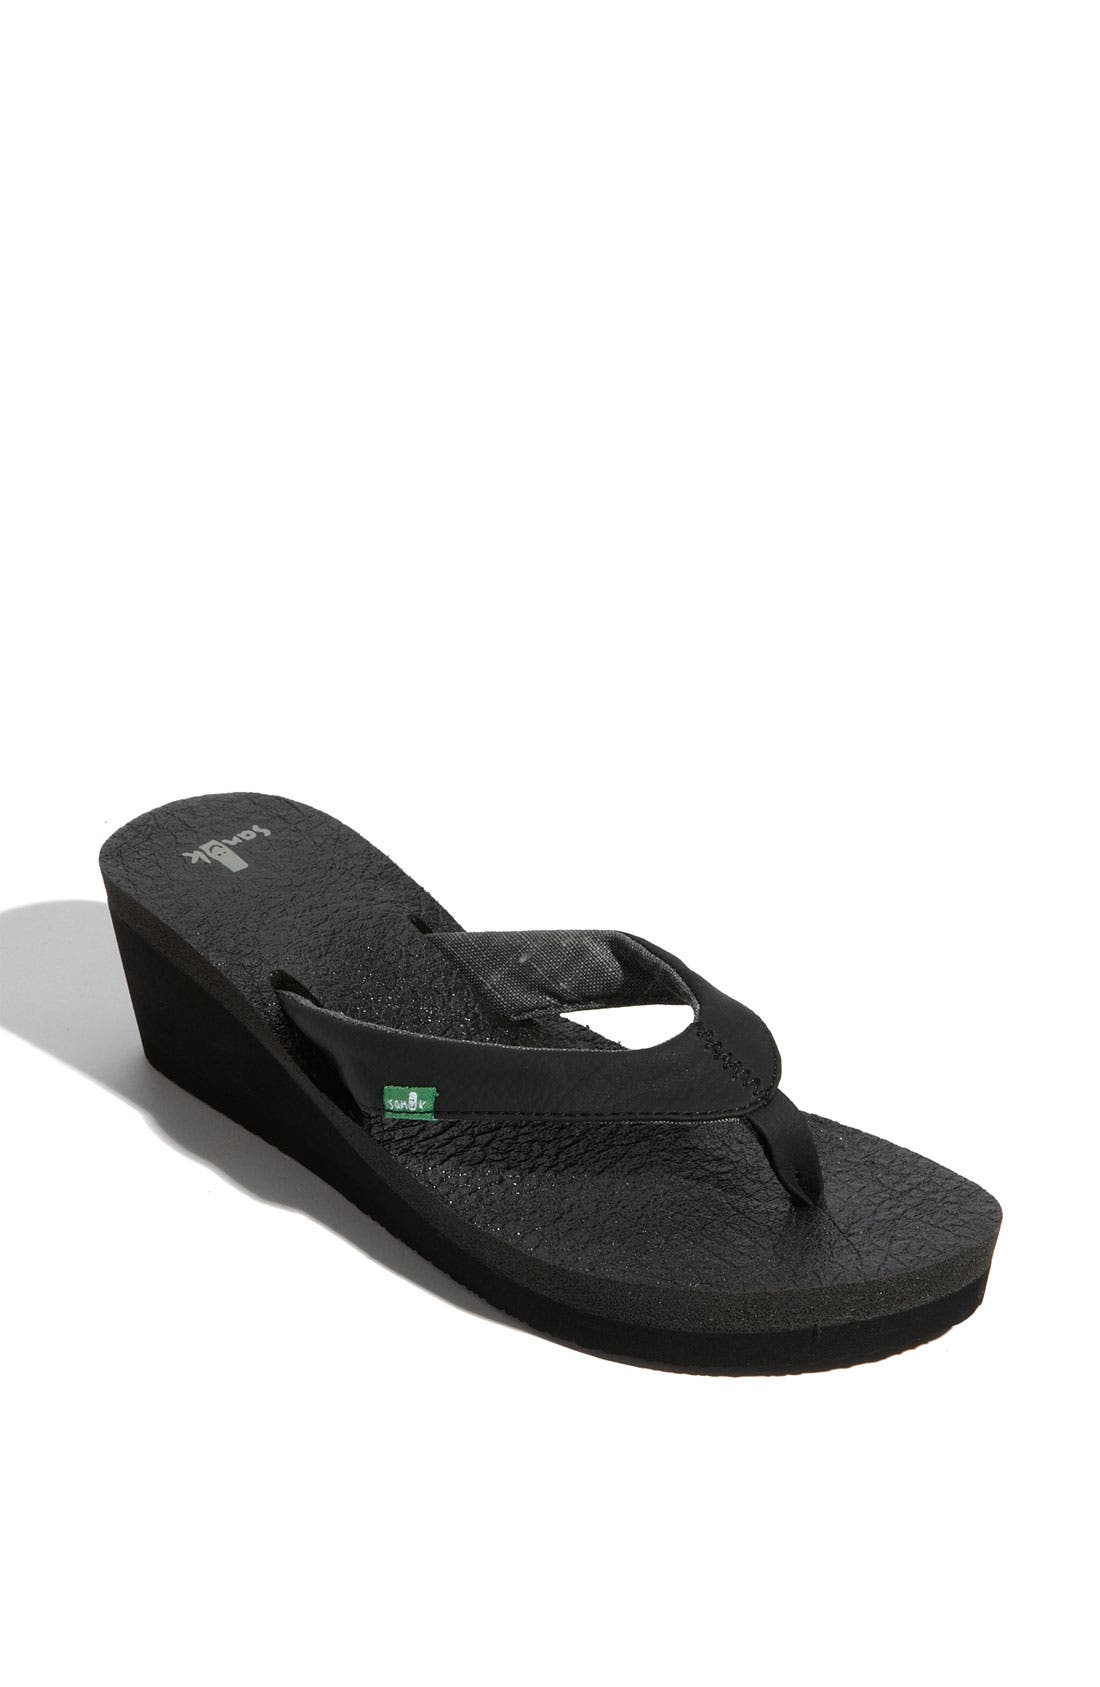 'Yoga Mat' Wedge Flip Flop,                             Main thumbnail 1, color,                             Black